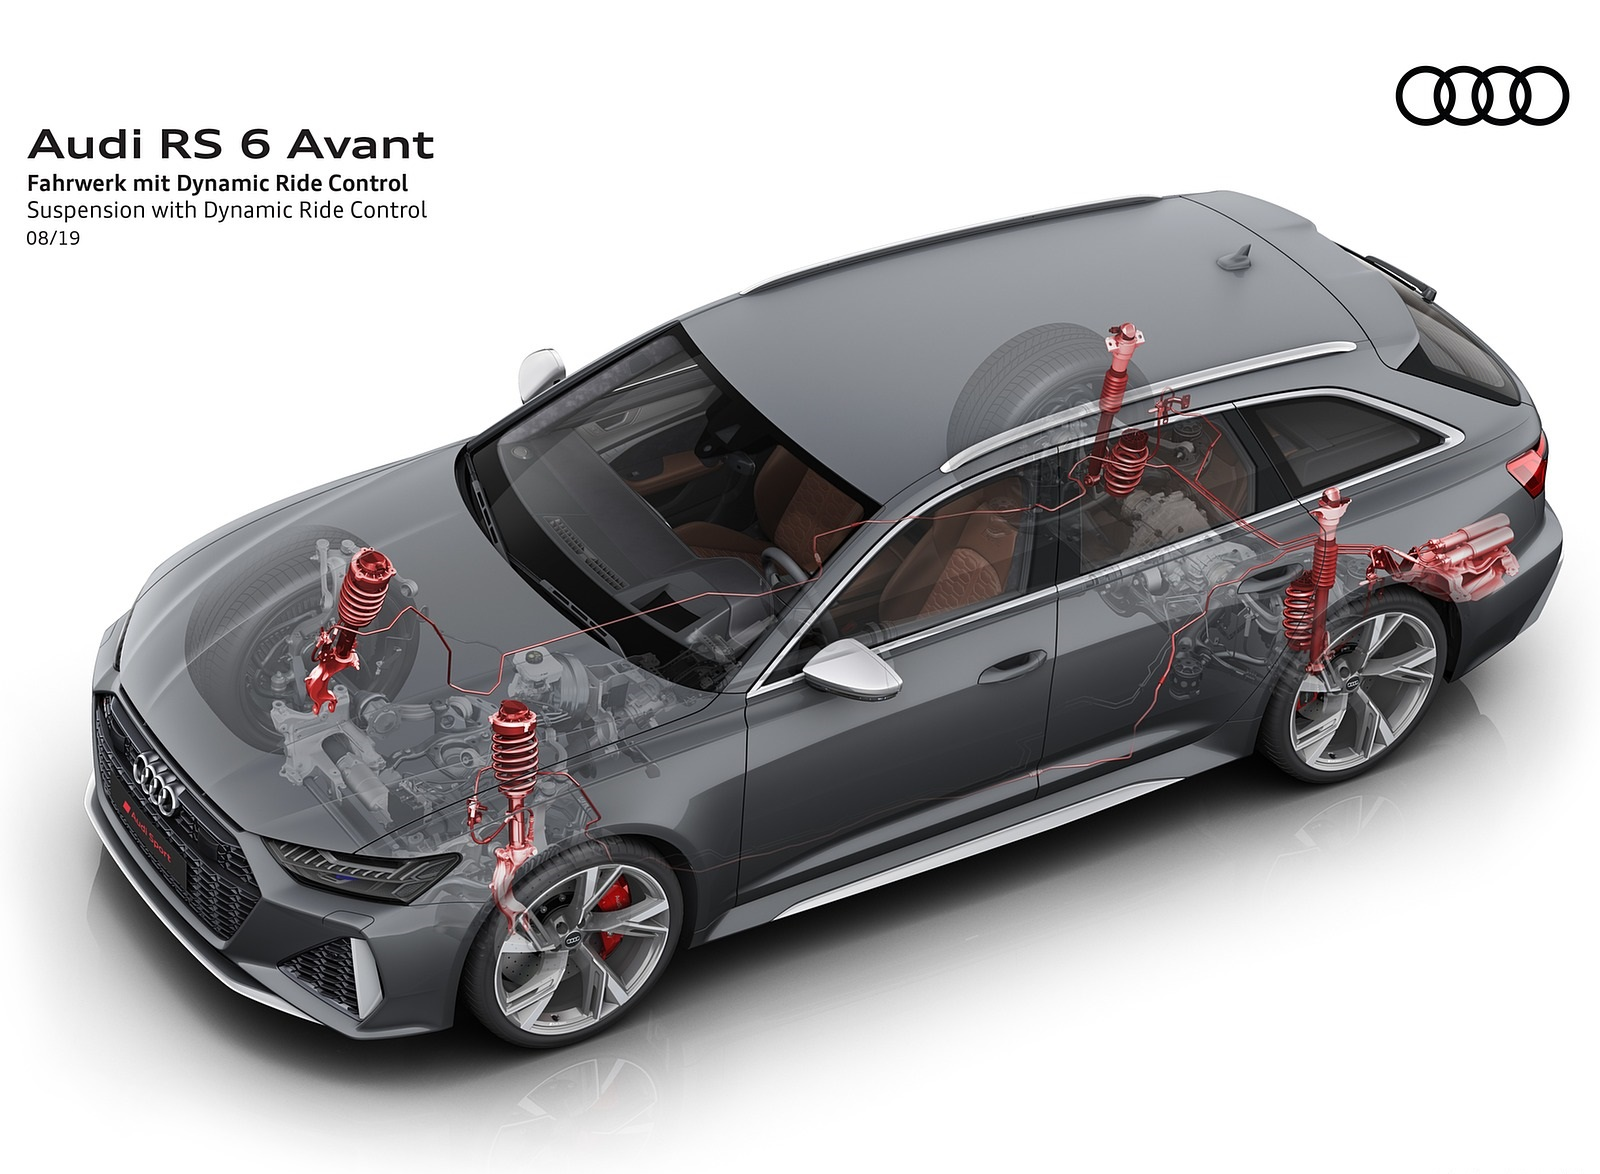 2020 Audi RS 6 Avant Suspension with Dynamic Ride Control Wallpapers (15)